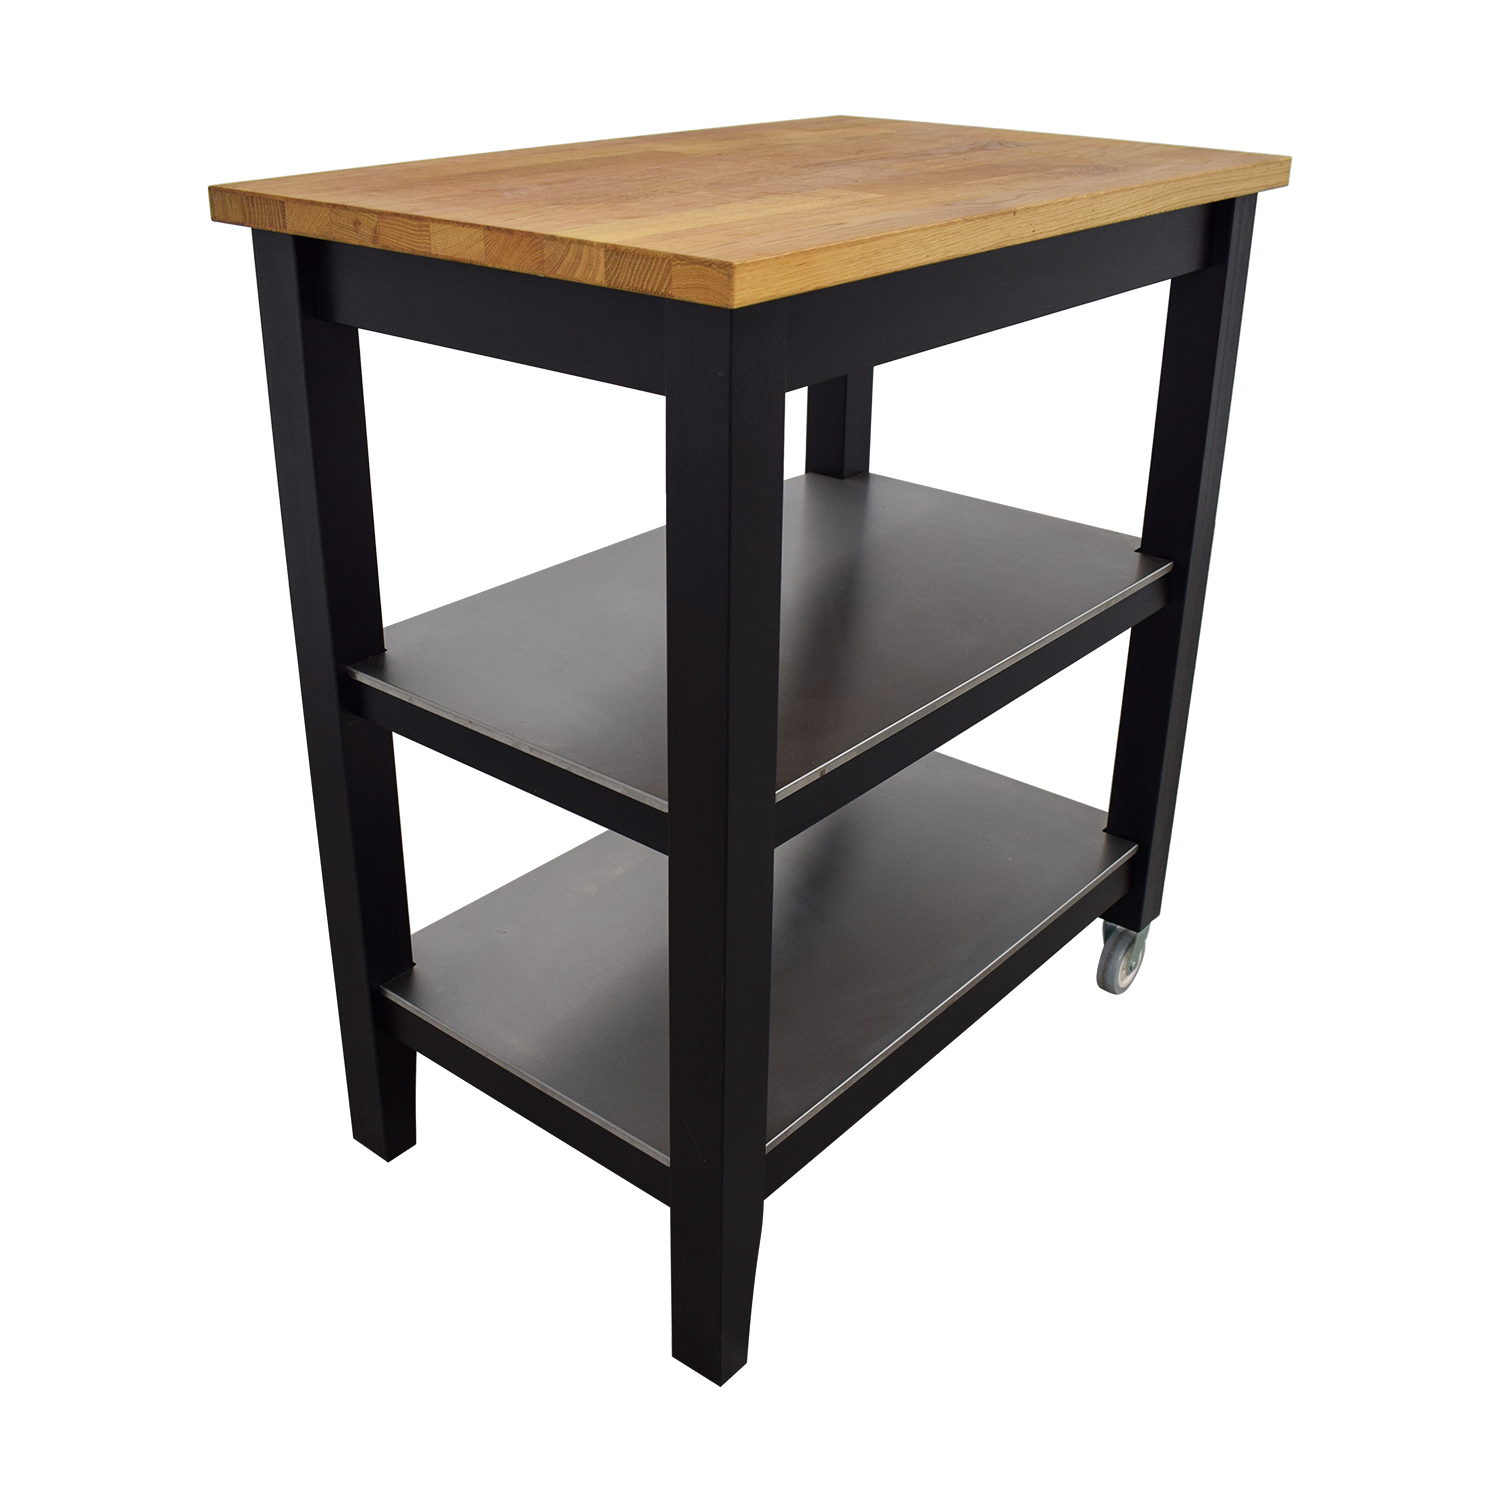 IKEA IKEA Stenstorp Wood and Black Kitchen Island Cart nyc